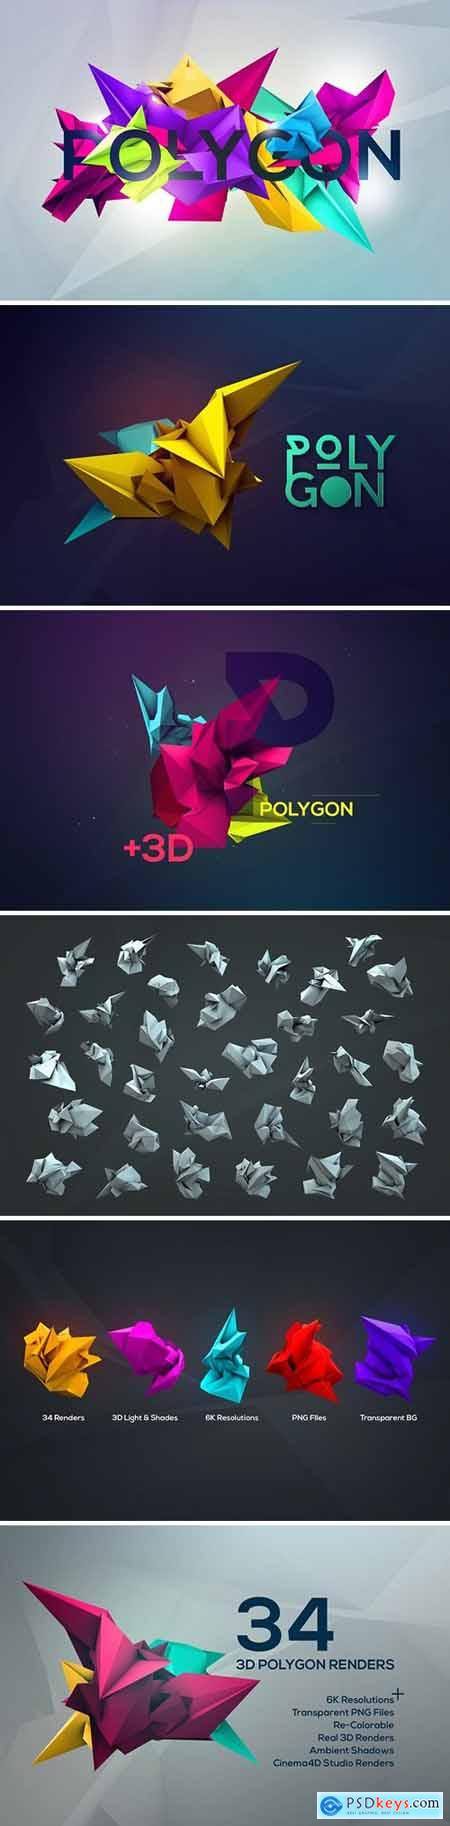 3D Geometric Polygon Renders 512075